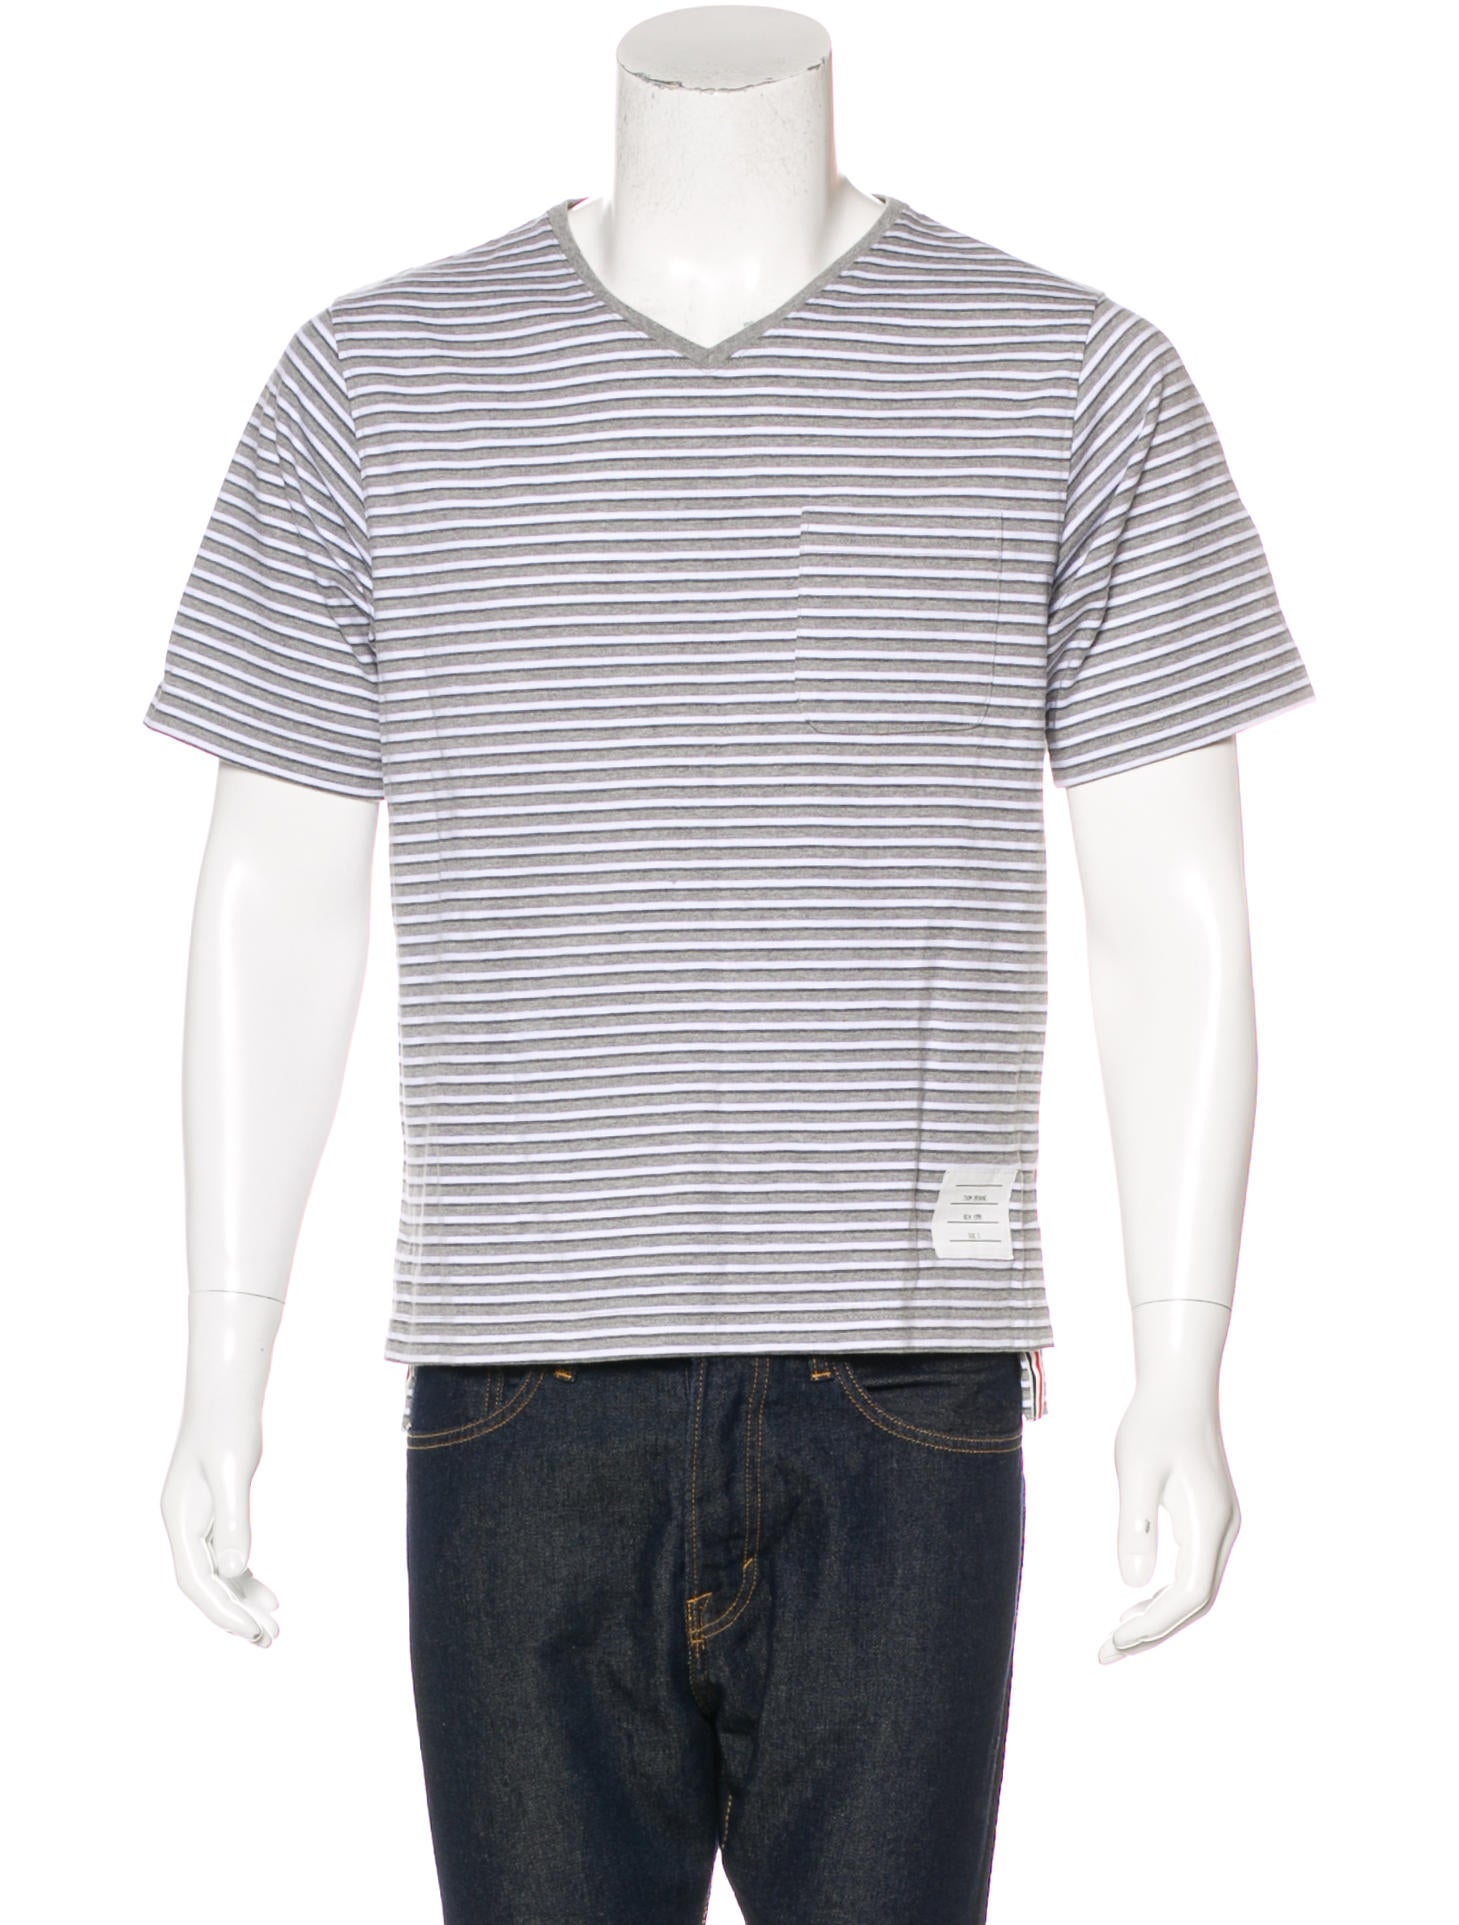 Thom browne striped v neck t shirt clothing tho22310 for Thom browne t shirt